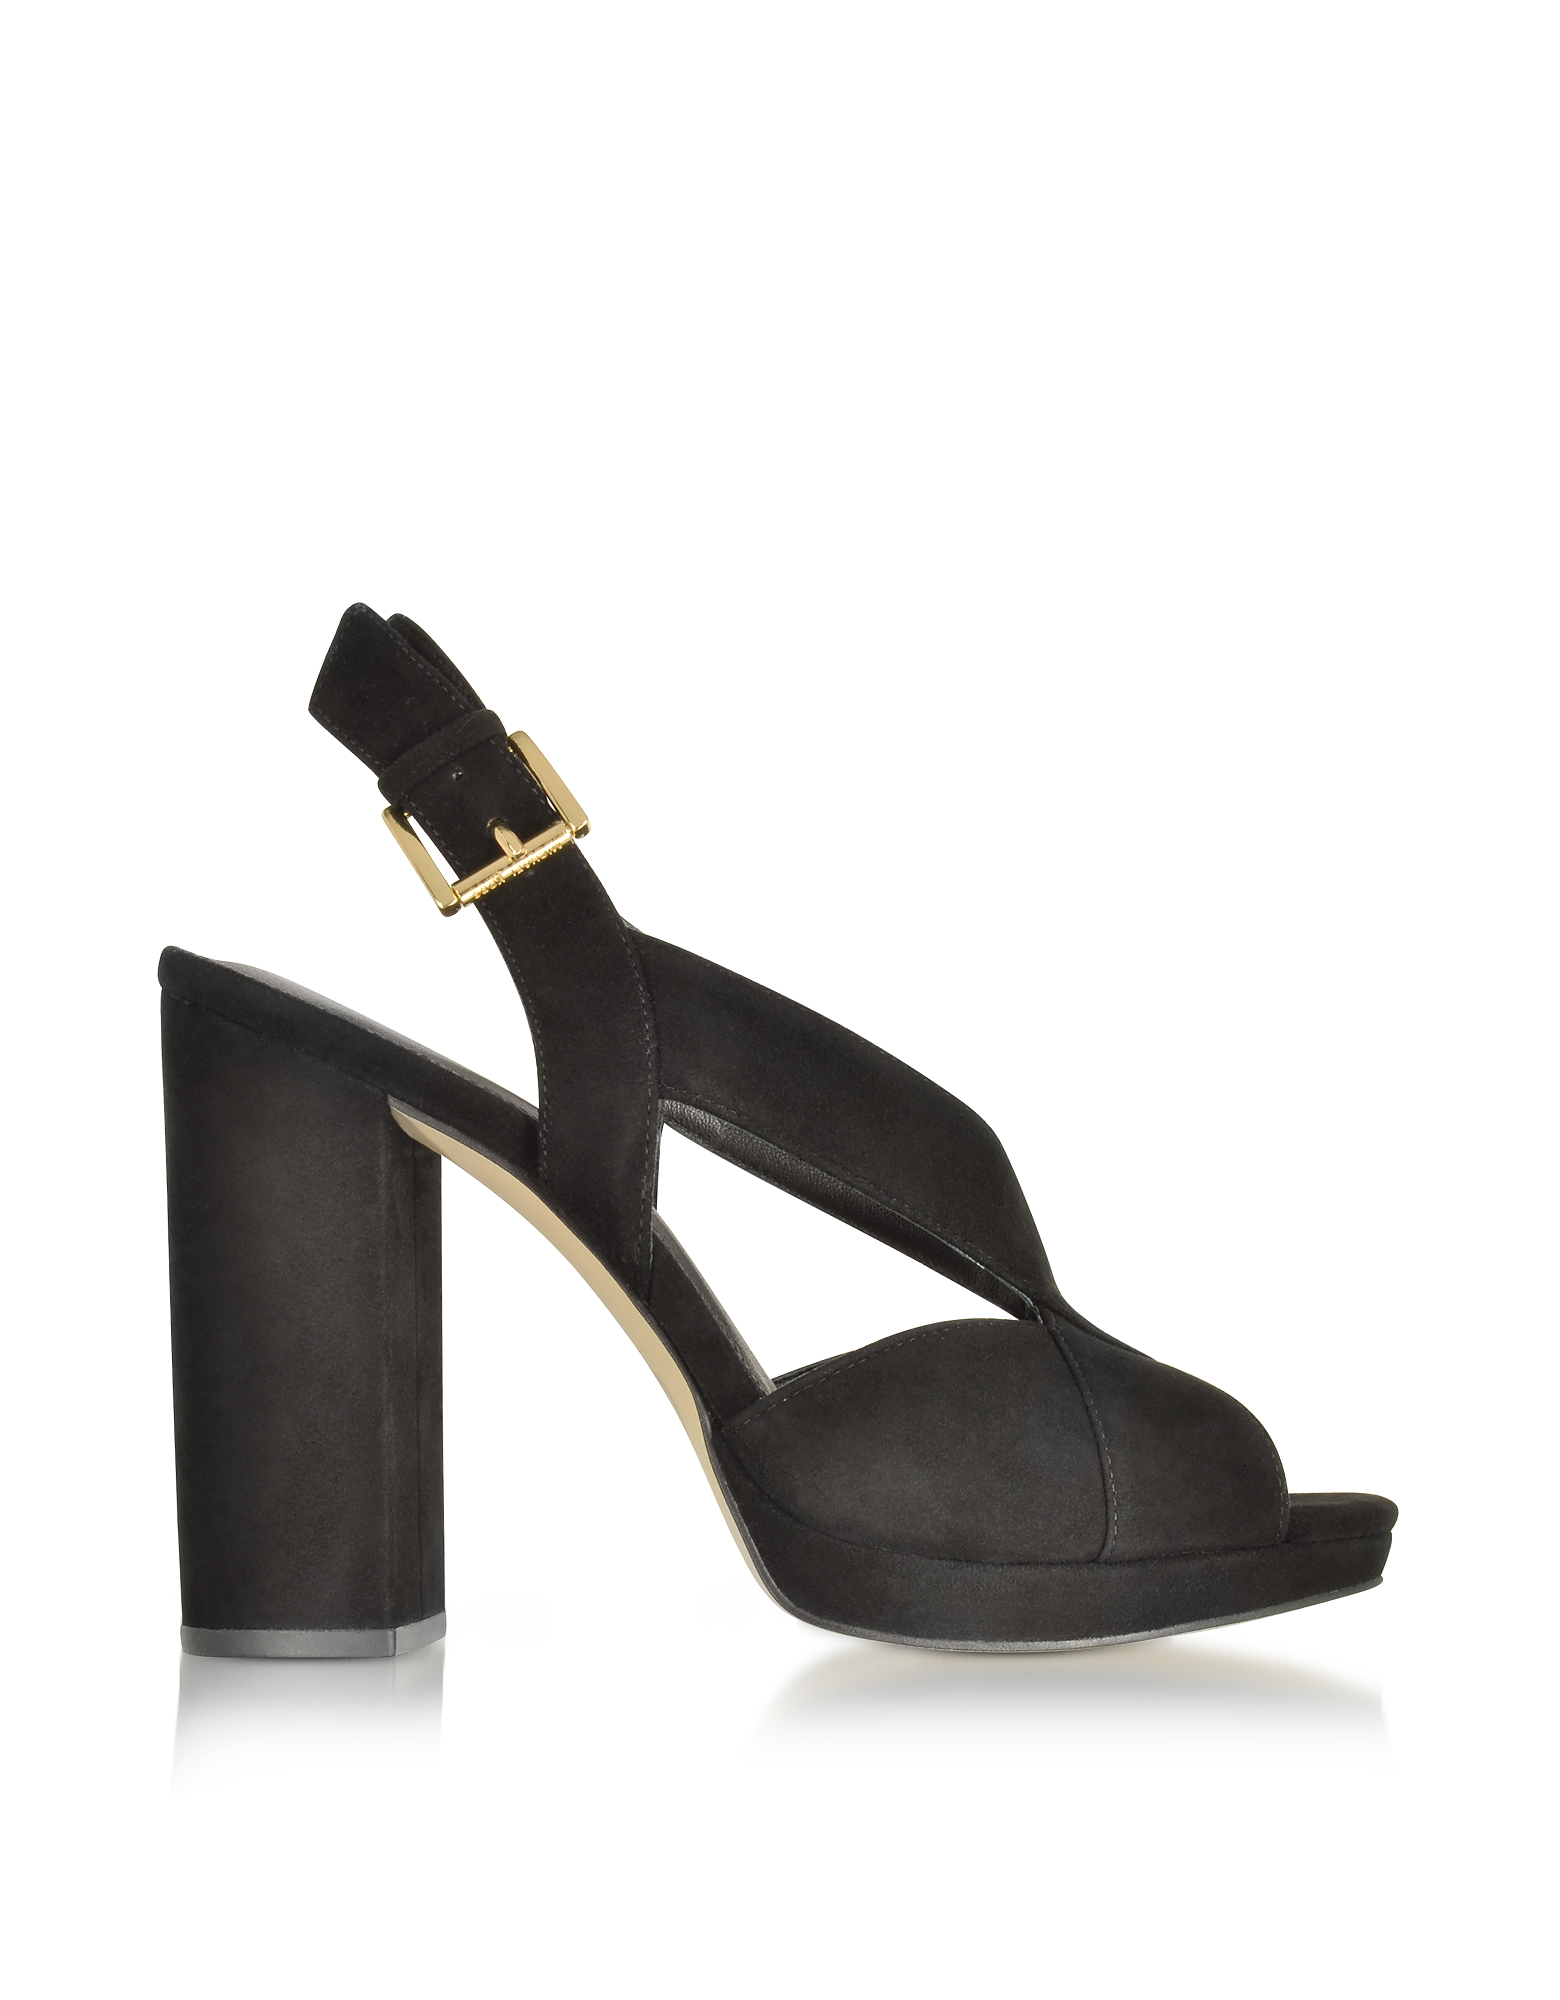 Michael Kors Shoes, Becky Black Suede Platform Sandals